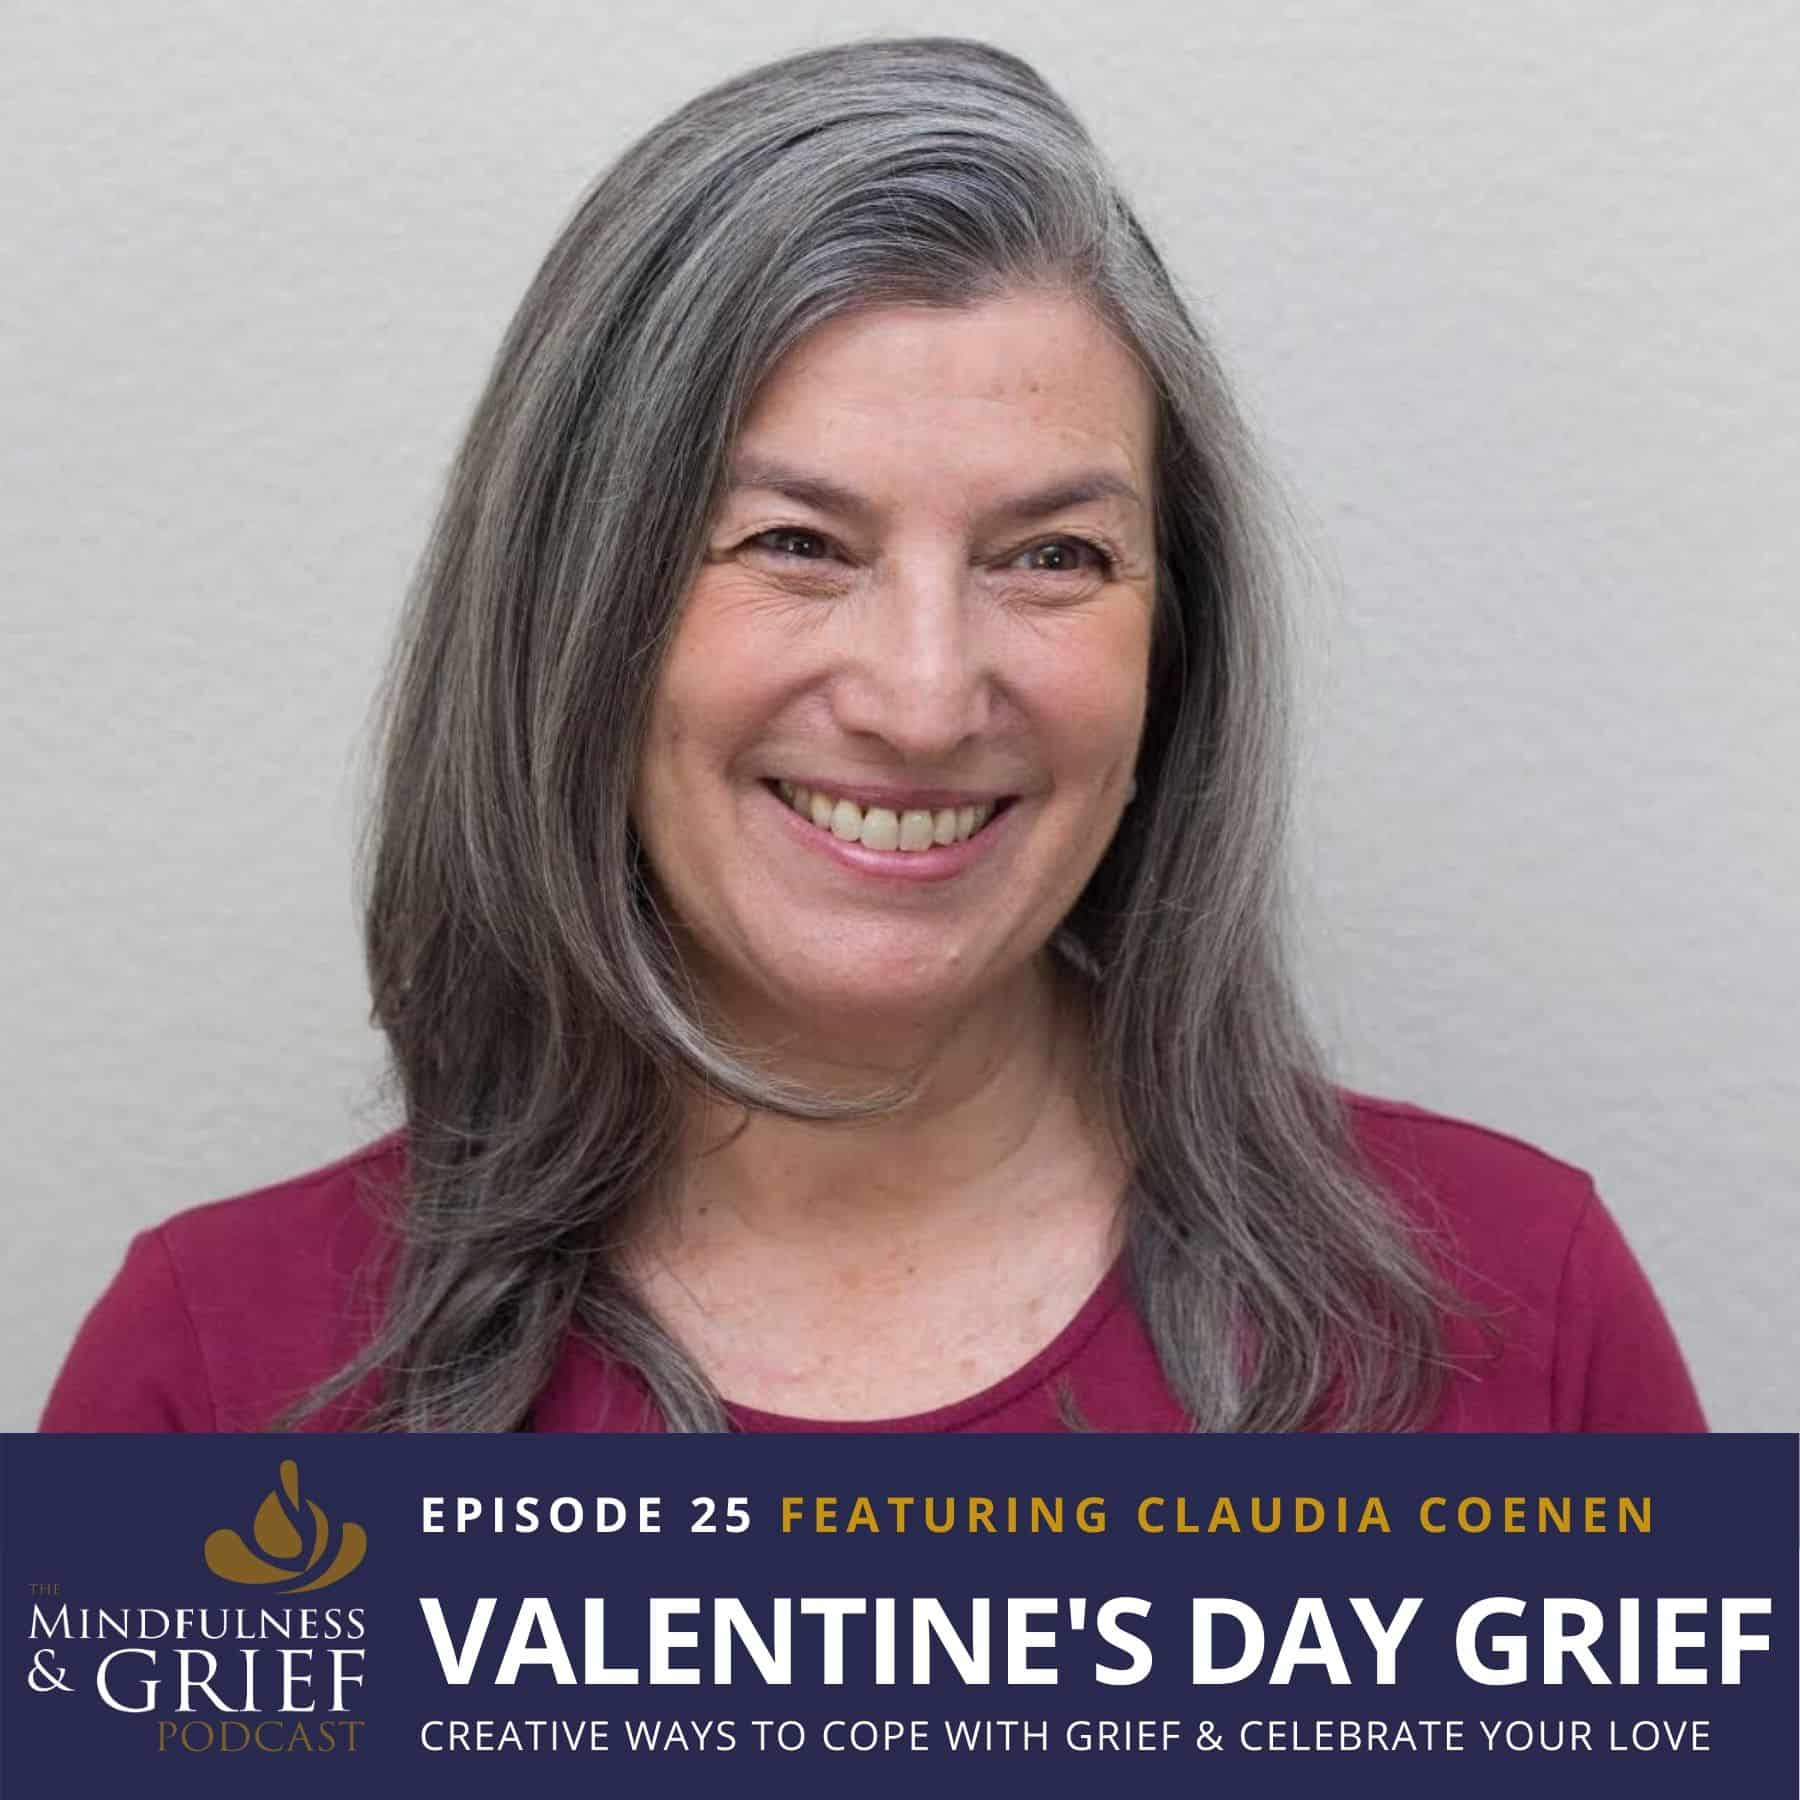 Valentine's Day Grief: Creative Ways To Cope With Grief & Celebrate Your Love